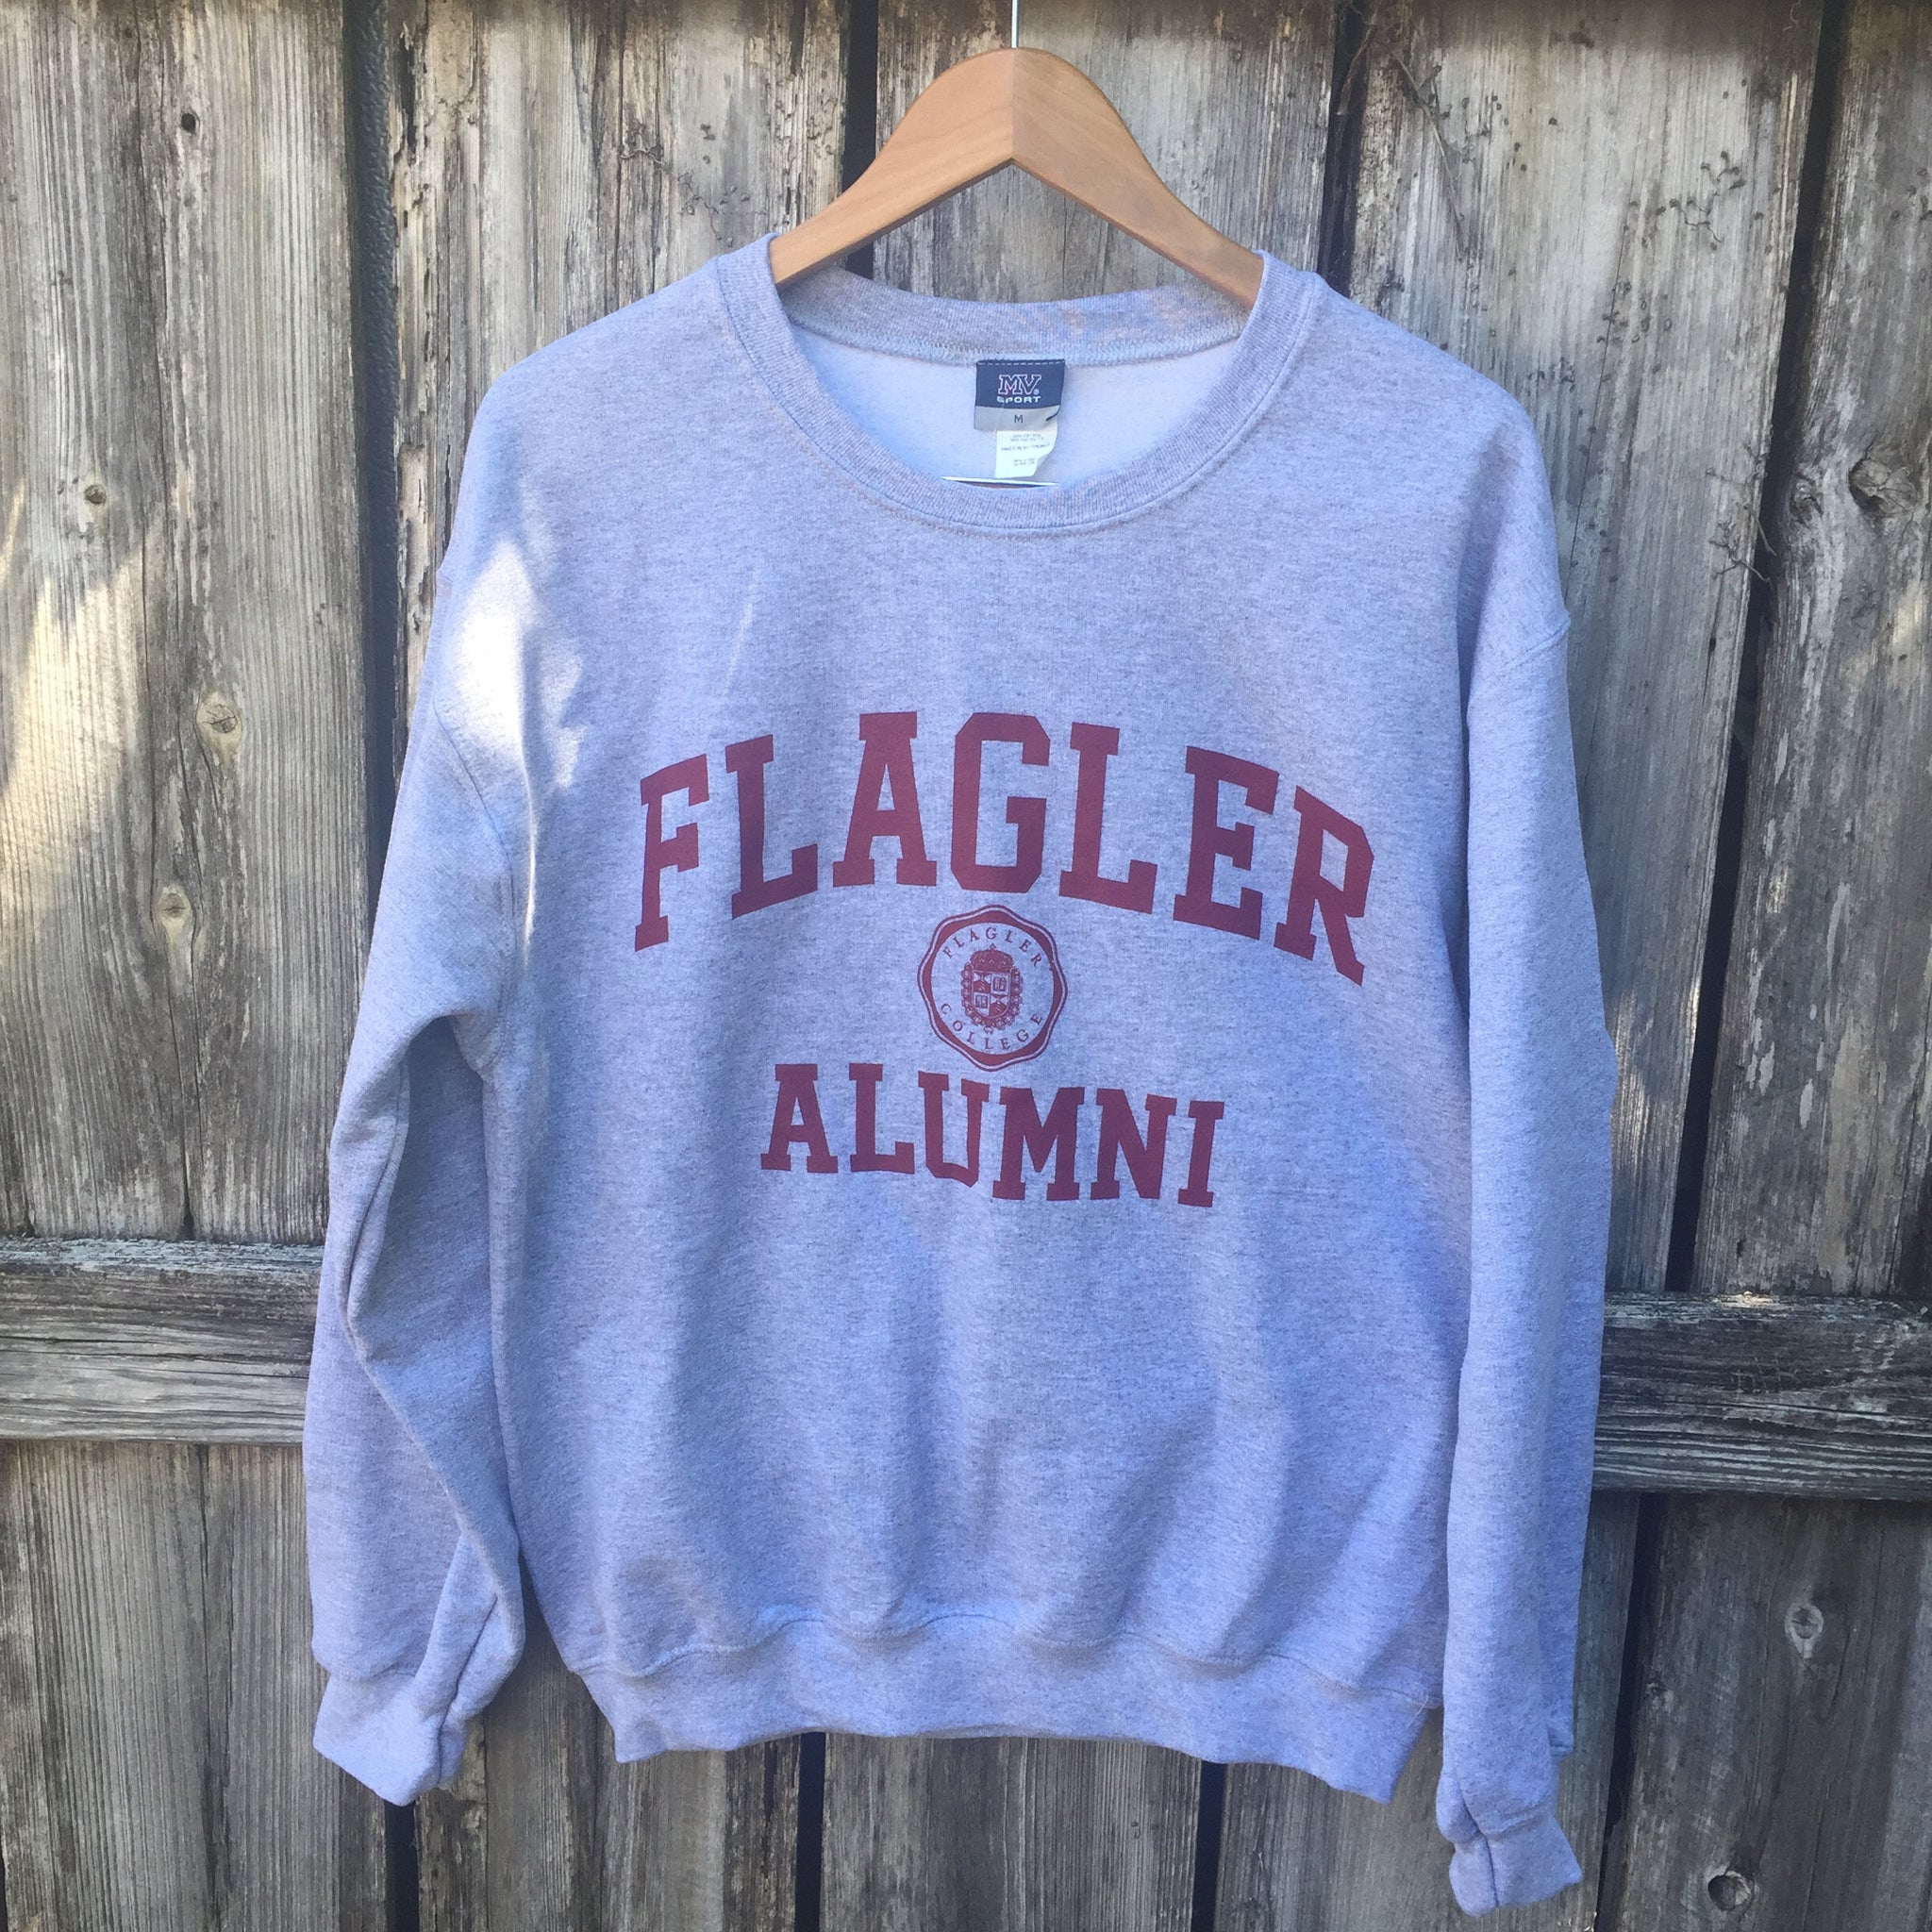 Grey crew neck with Flagler and Alumni printed in red. in between Flagler and alumni is a shield seal also in red